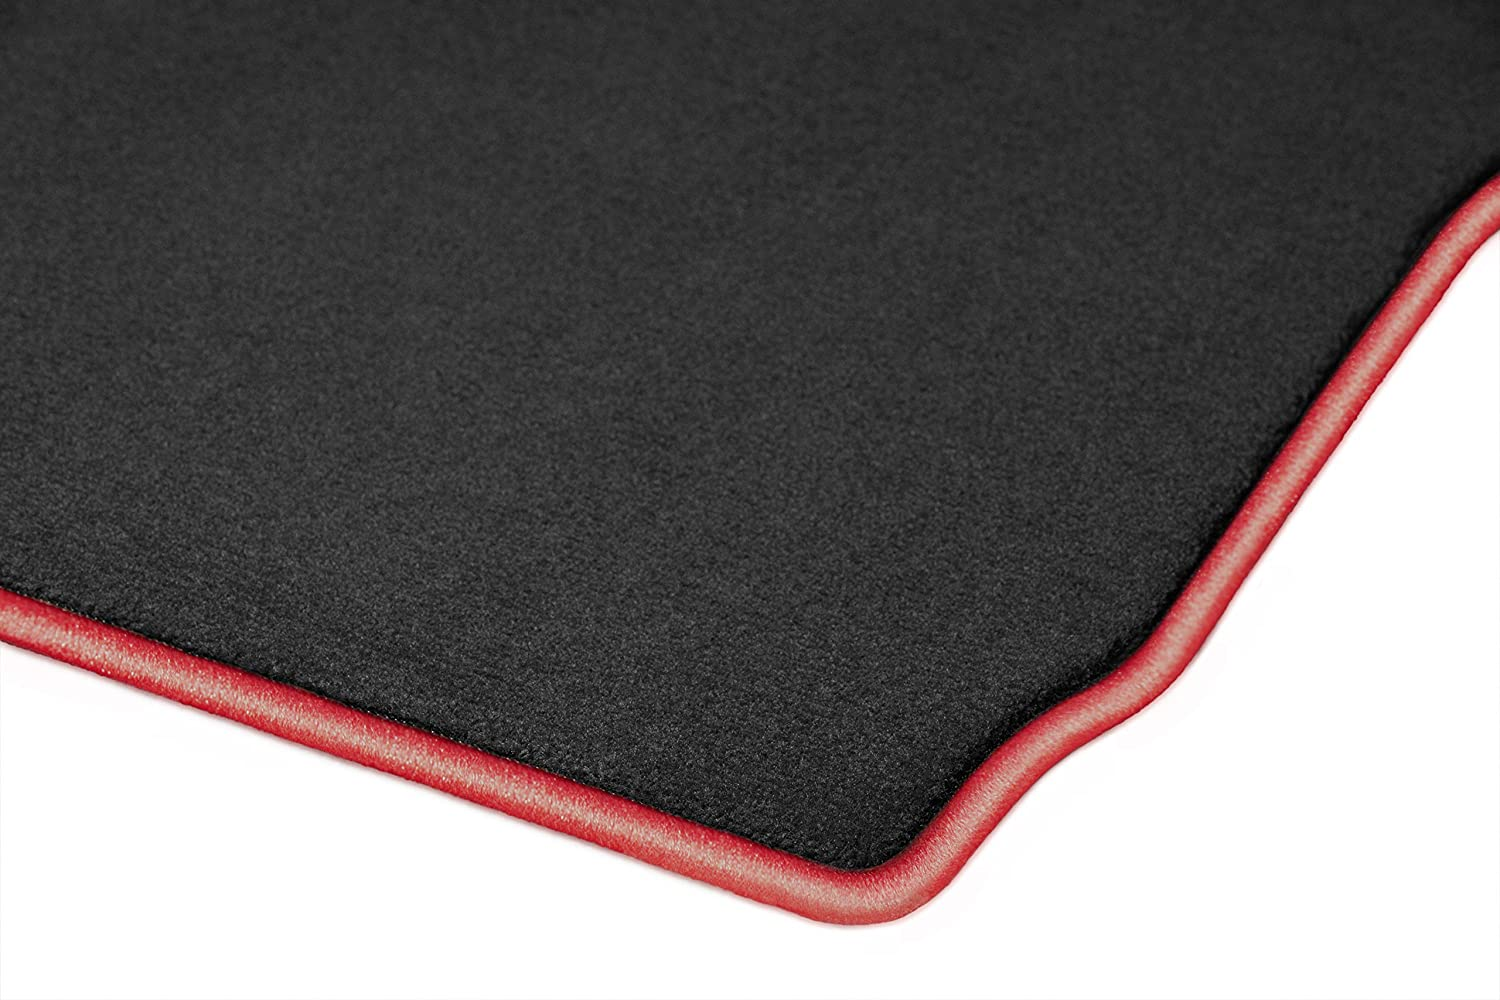 1999 1998 GGBAILEY D3239A-F1A-BLK/_BR Custom Fit Automotive Carpet Floor Mats for 1996 1997 2001 Audi A4 Sedan Black with Red Edging Driver /& Passenger 2000